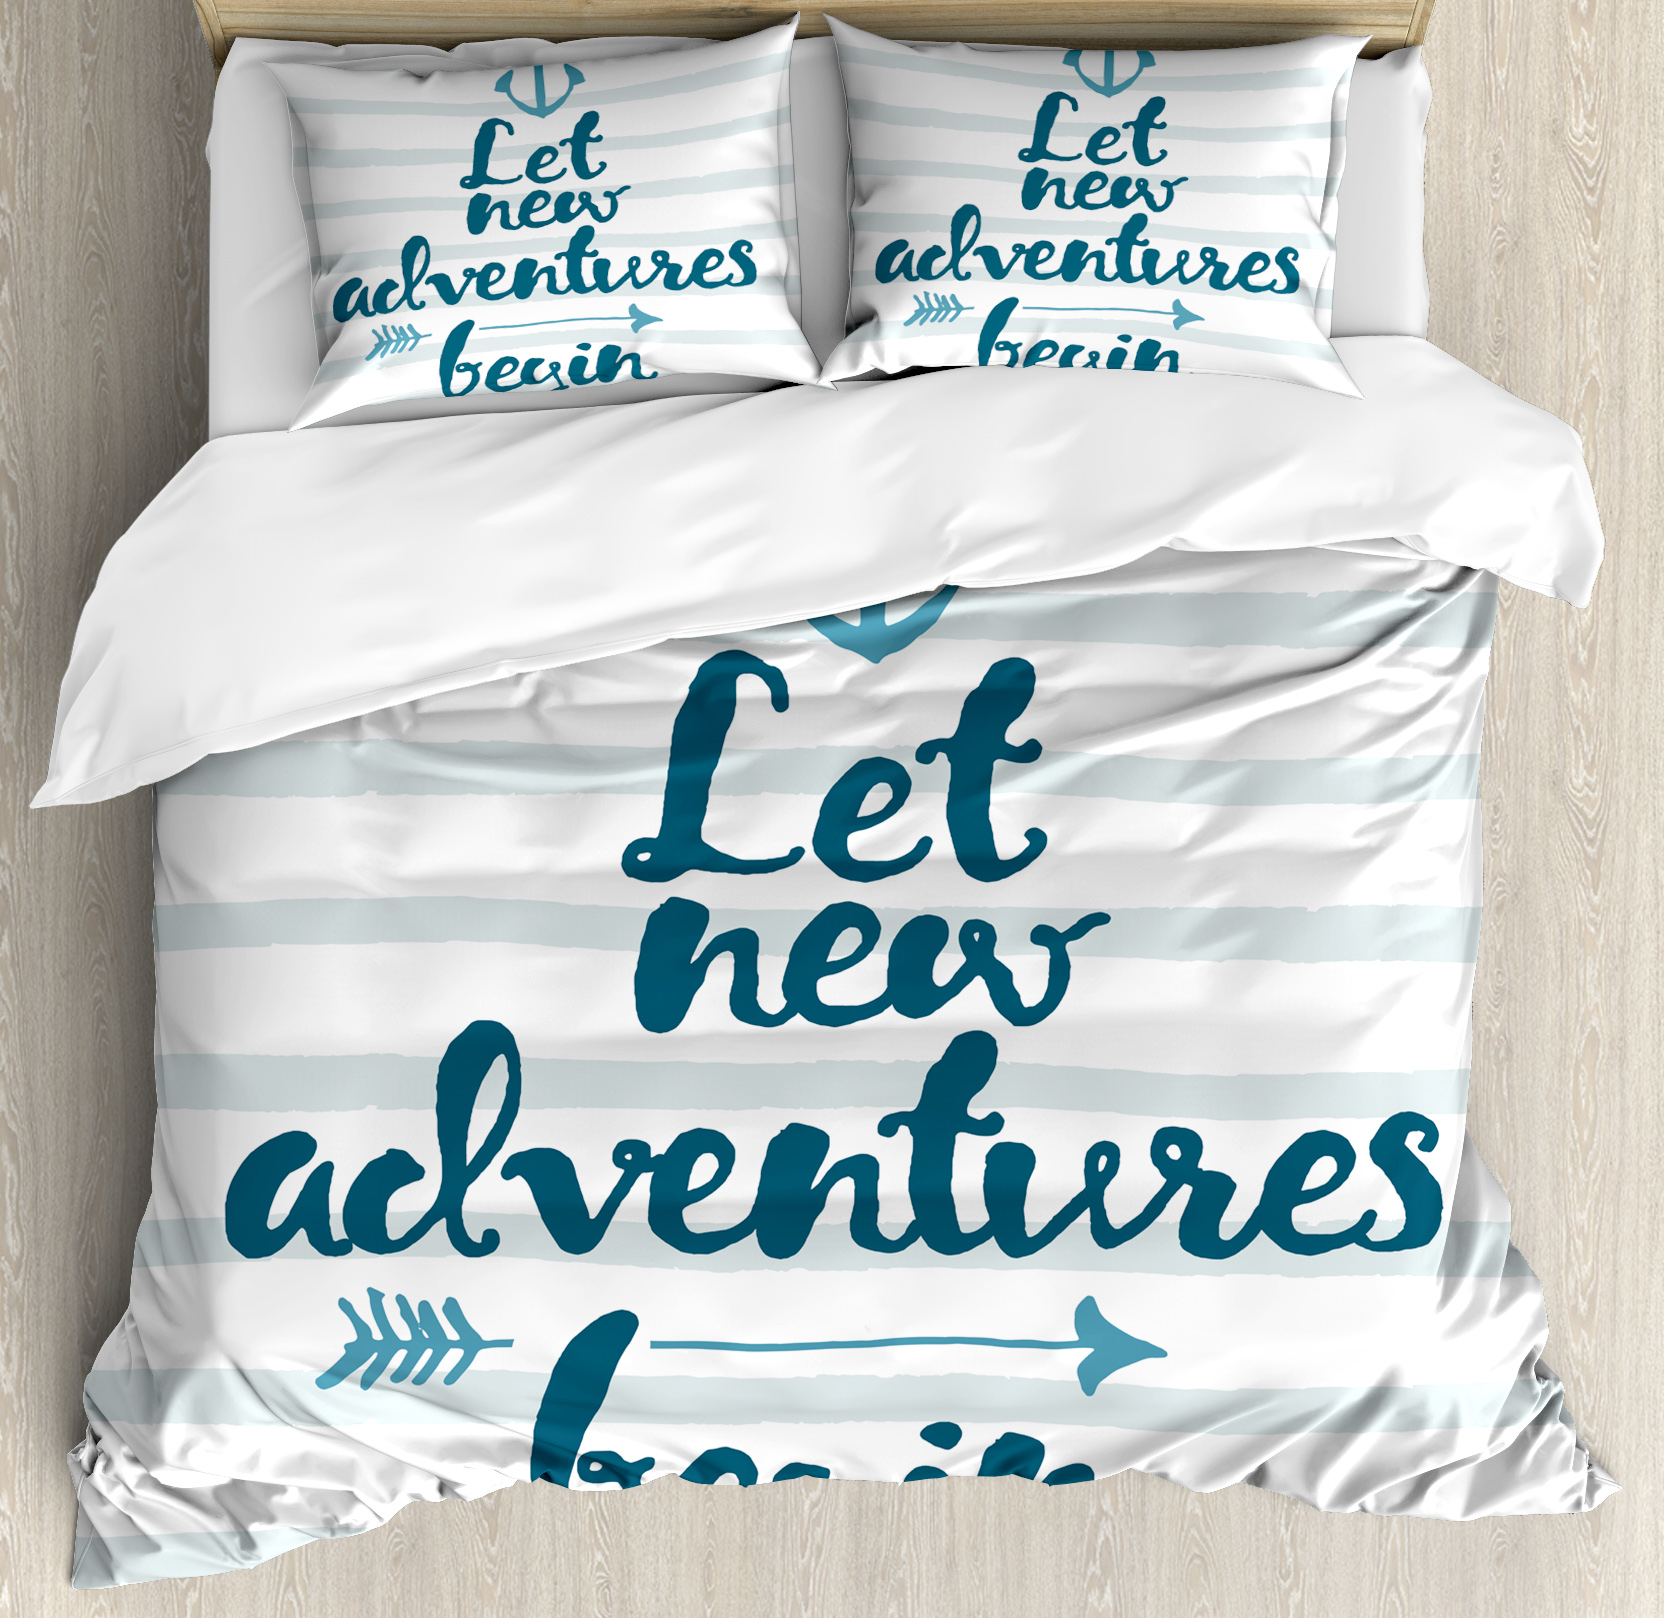 Adventure King Size Duvet Cover Set, Nautical Stripes Anchor and Arrow Motivational Text Sea Travel Cruise, Decorative 3 Piece Bedding Set with 2 Pillow Shams, Night Blue Pale Blue, by Ambesonne